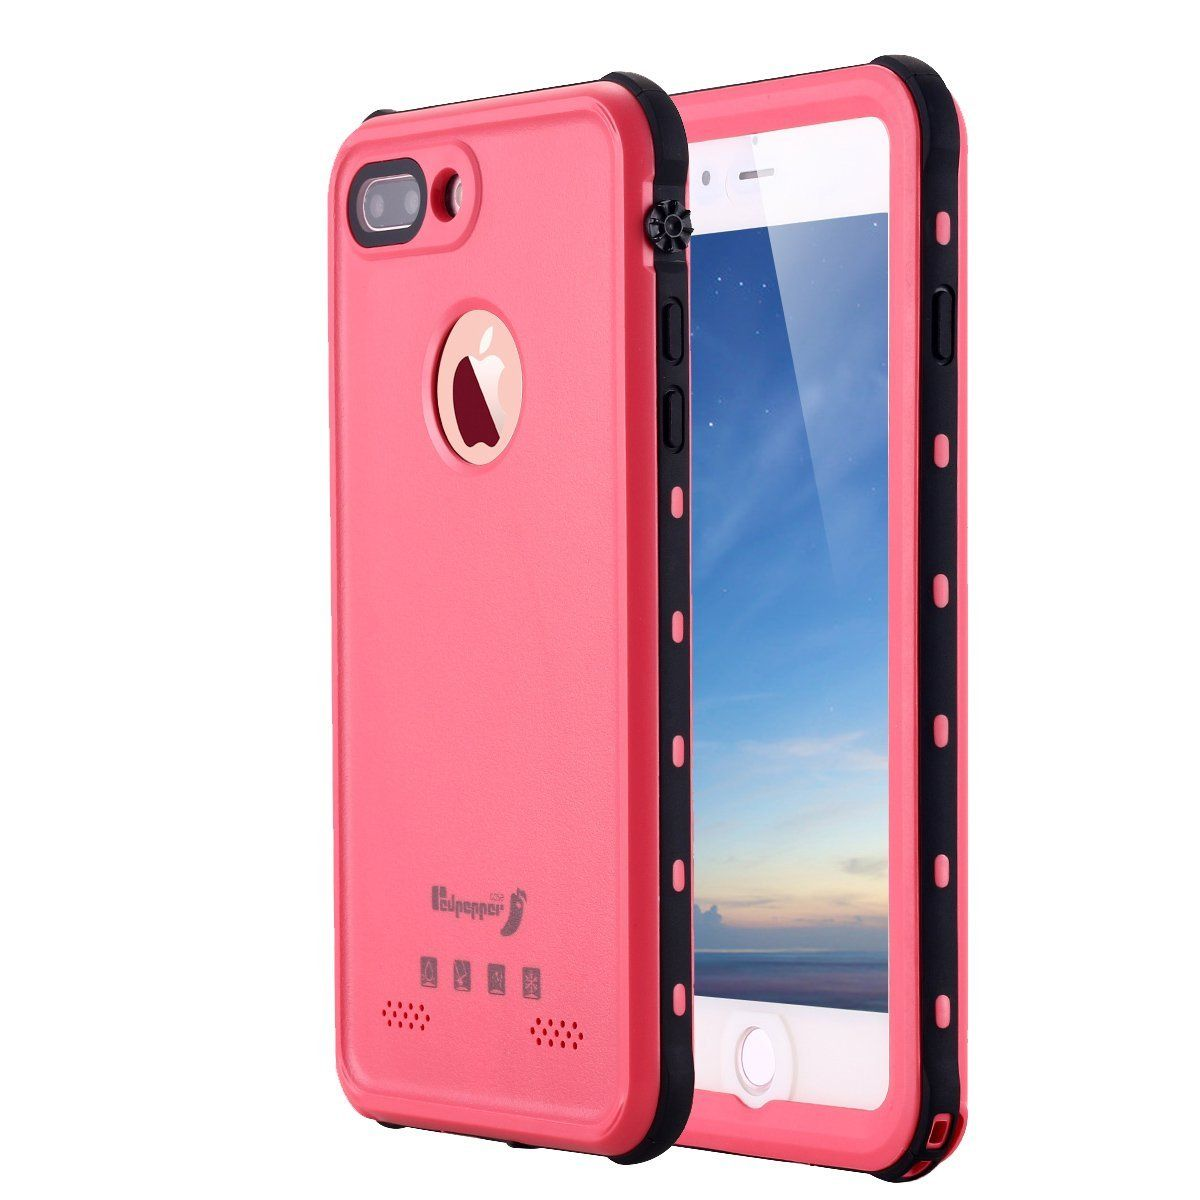 outlet store 98f35 ce572 iPhone 8 Plus Waterproof Case,iPhone 7 Plus Waterproof Case, LONTECT ...